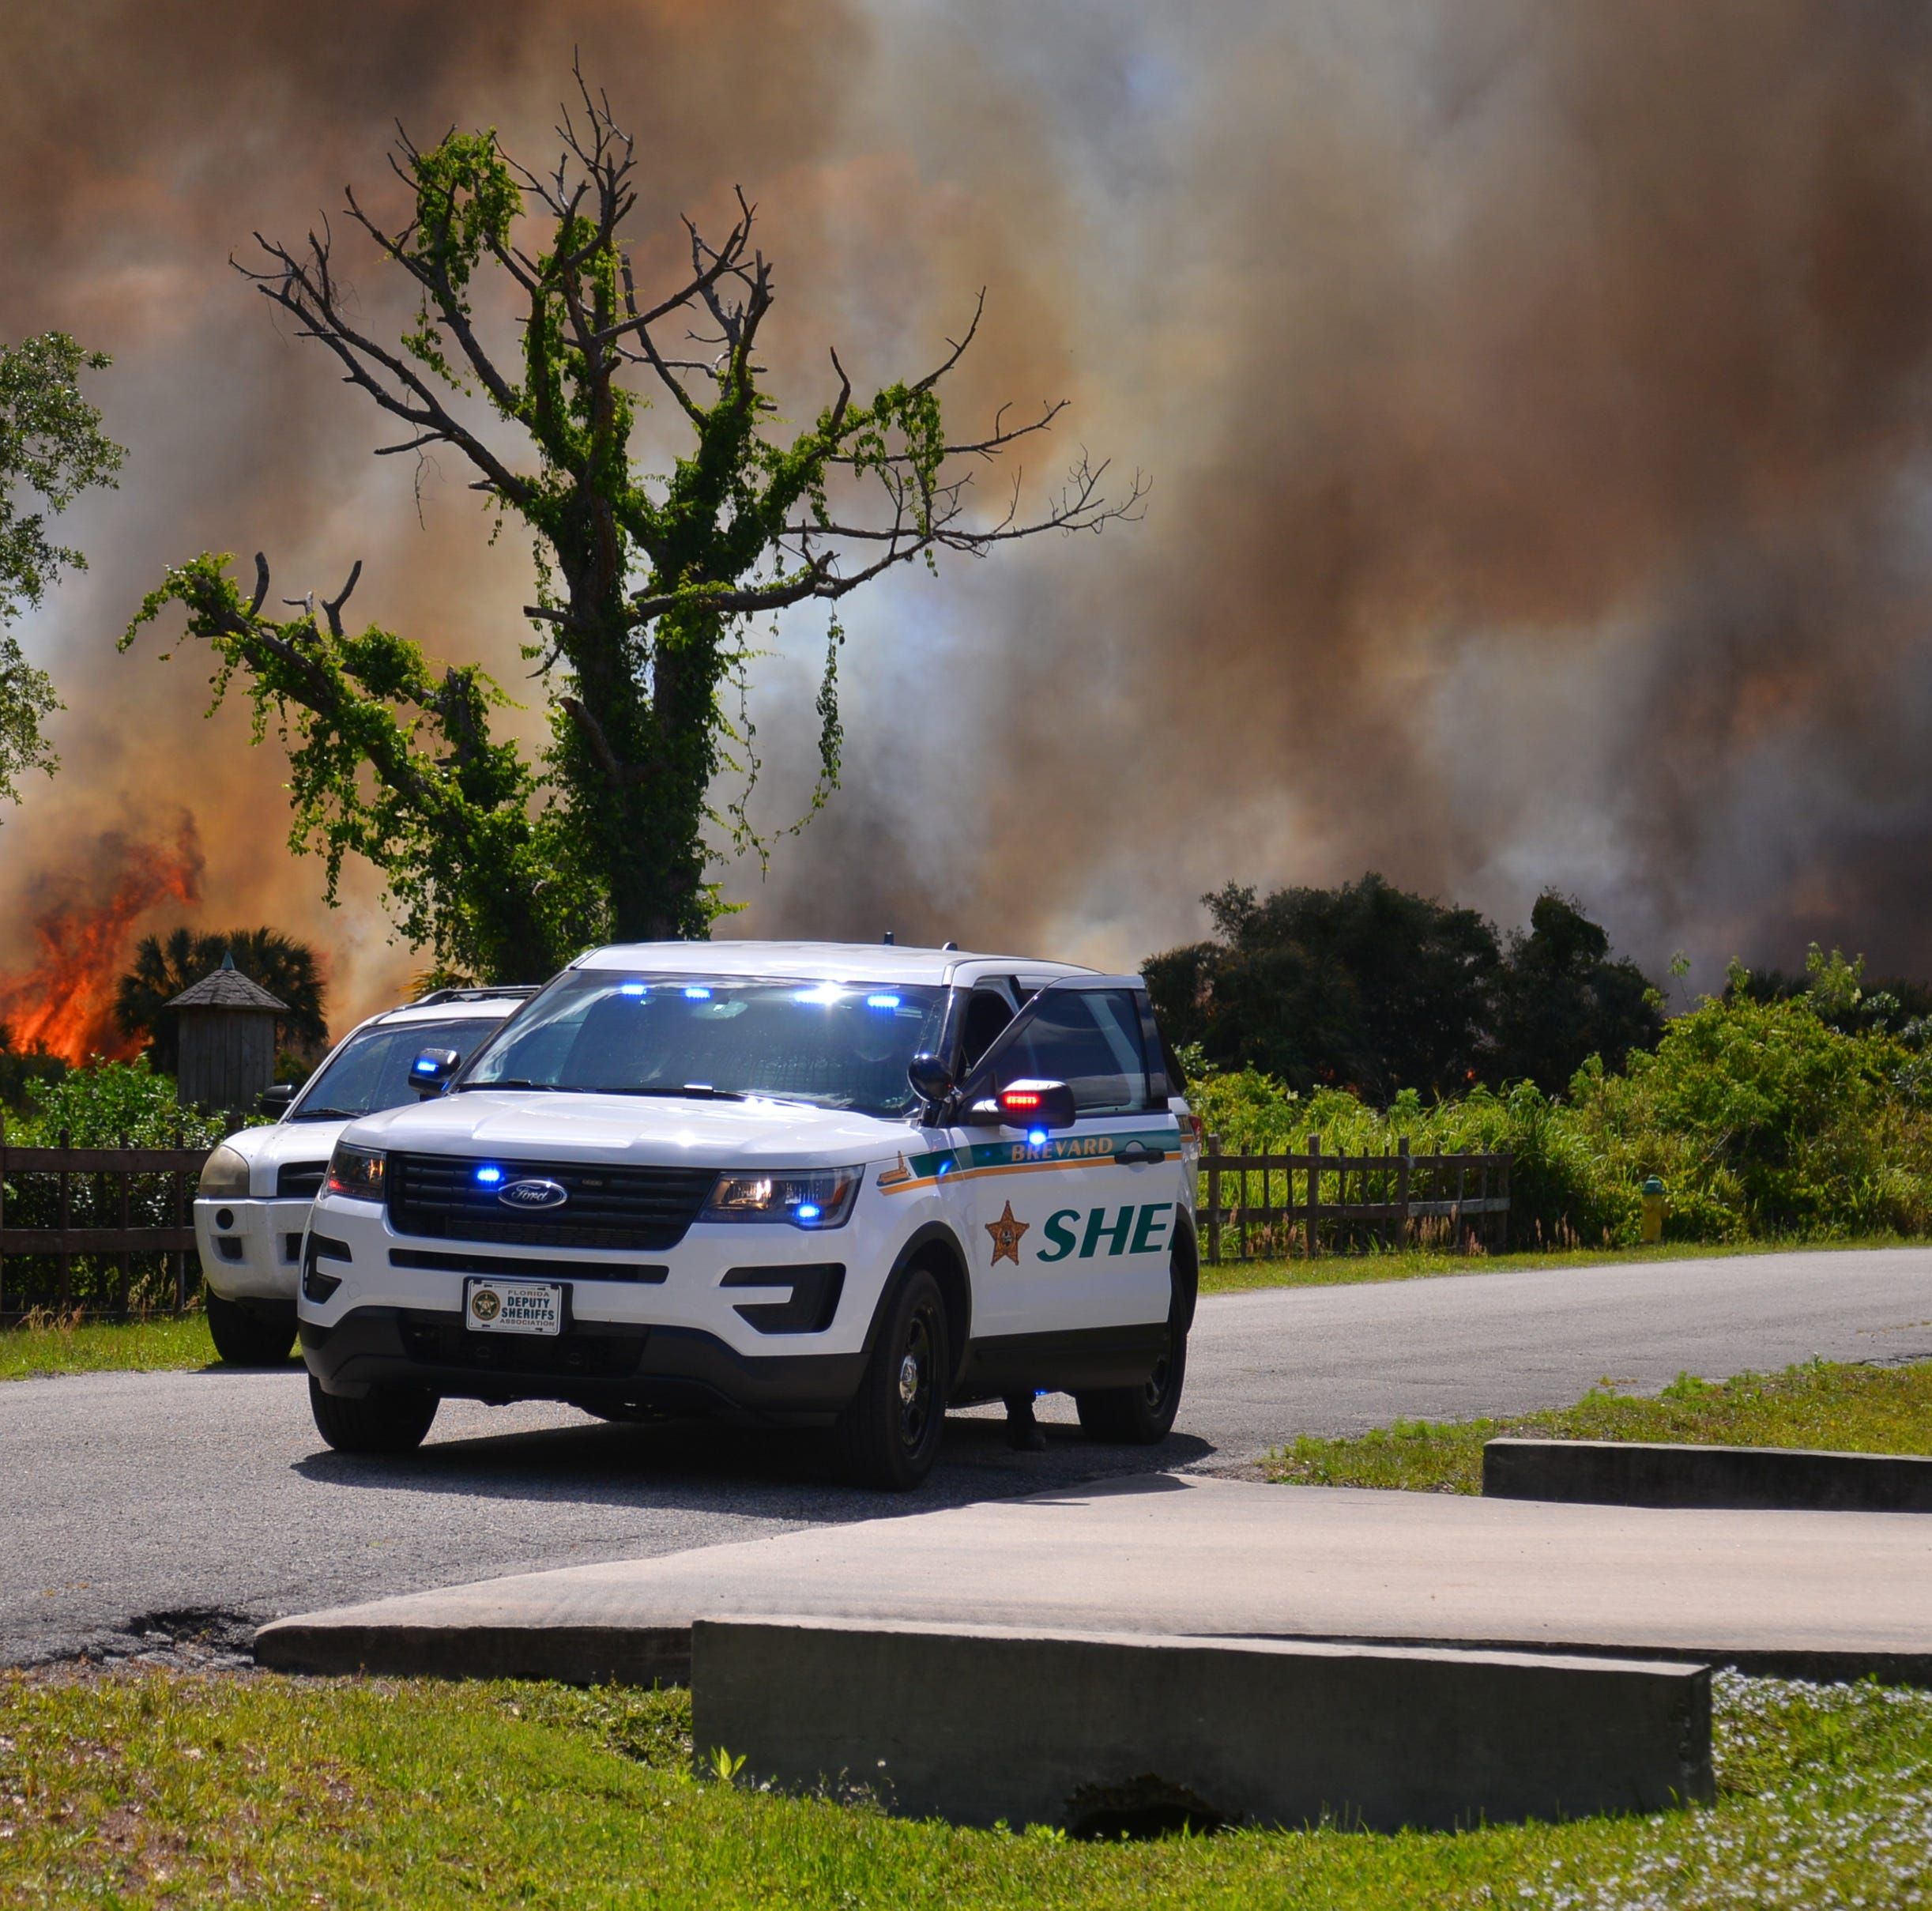 A brush fire north of Fay Lake west of Aberdeen Ave. in Port St John had home owners concerned as BCSO blocked off streets in the west end of Port St John. Brevard County Fire and Rescue were  on scene as well as forestry workers. Helicopters dumped water on the fire.